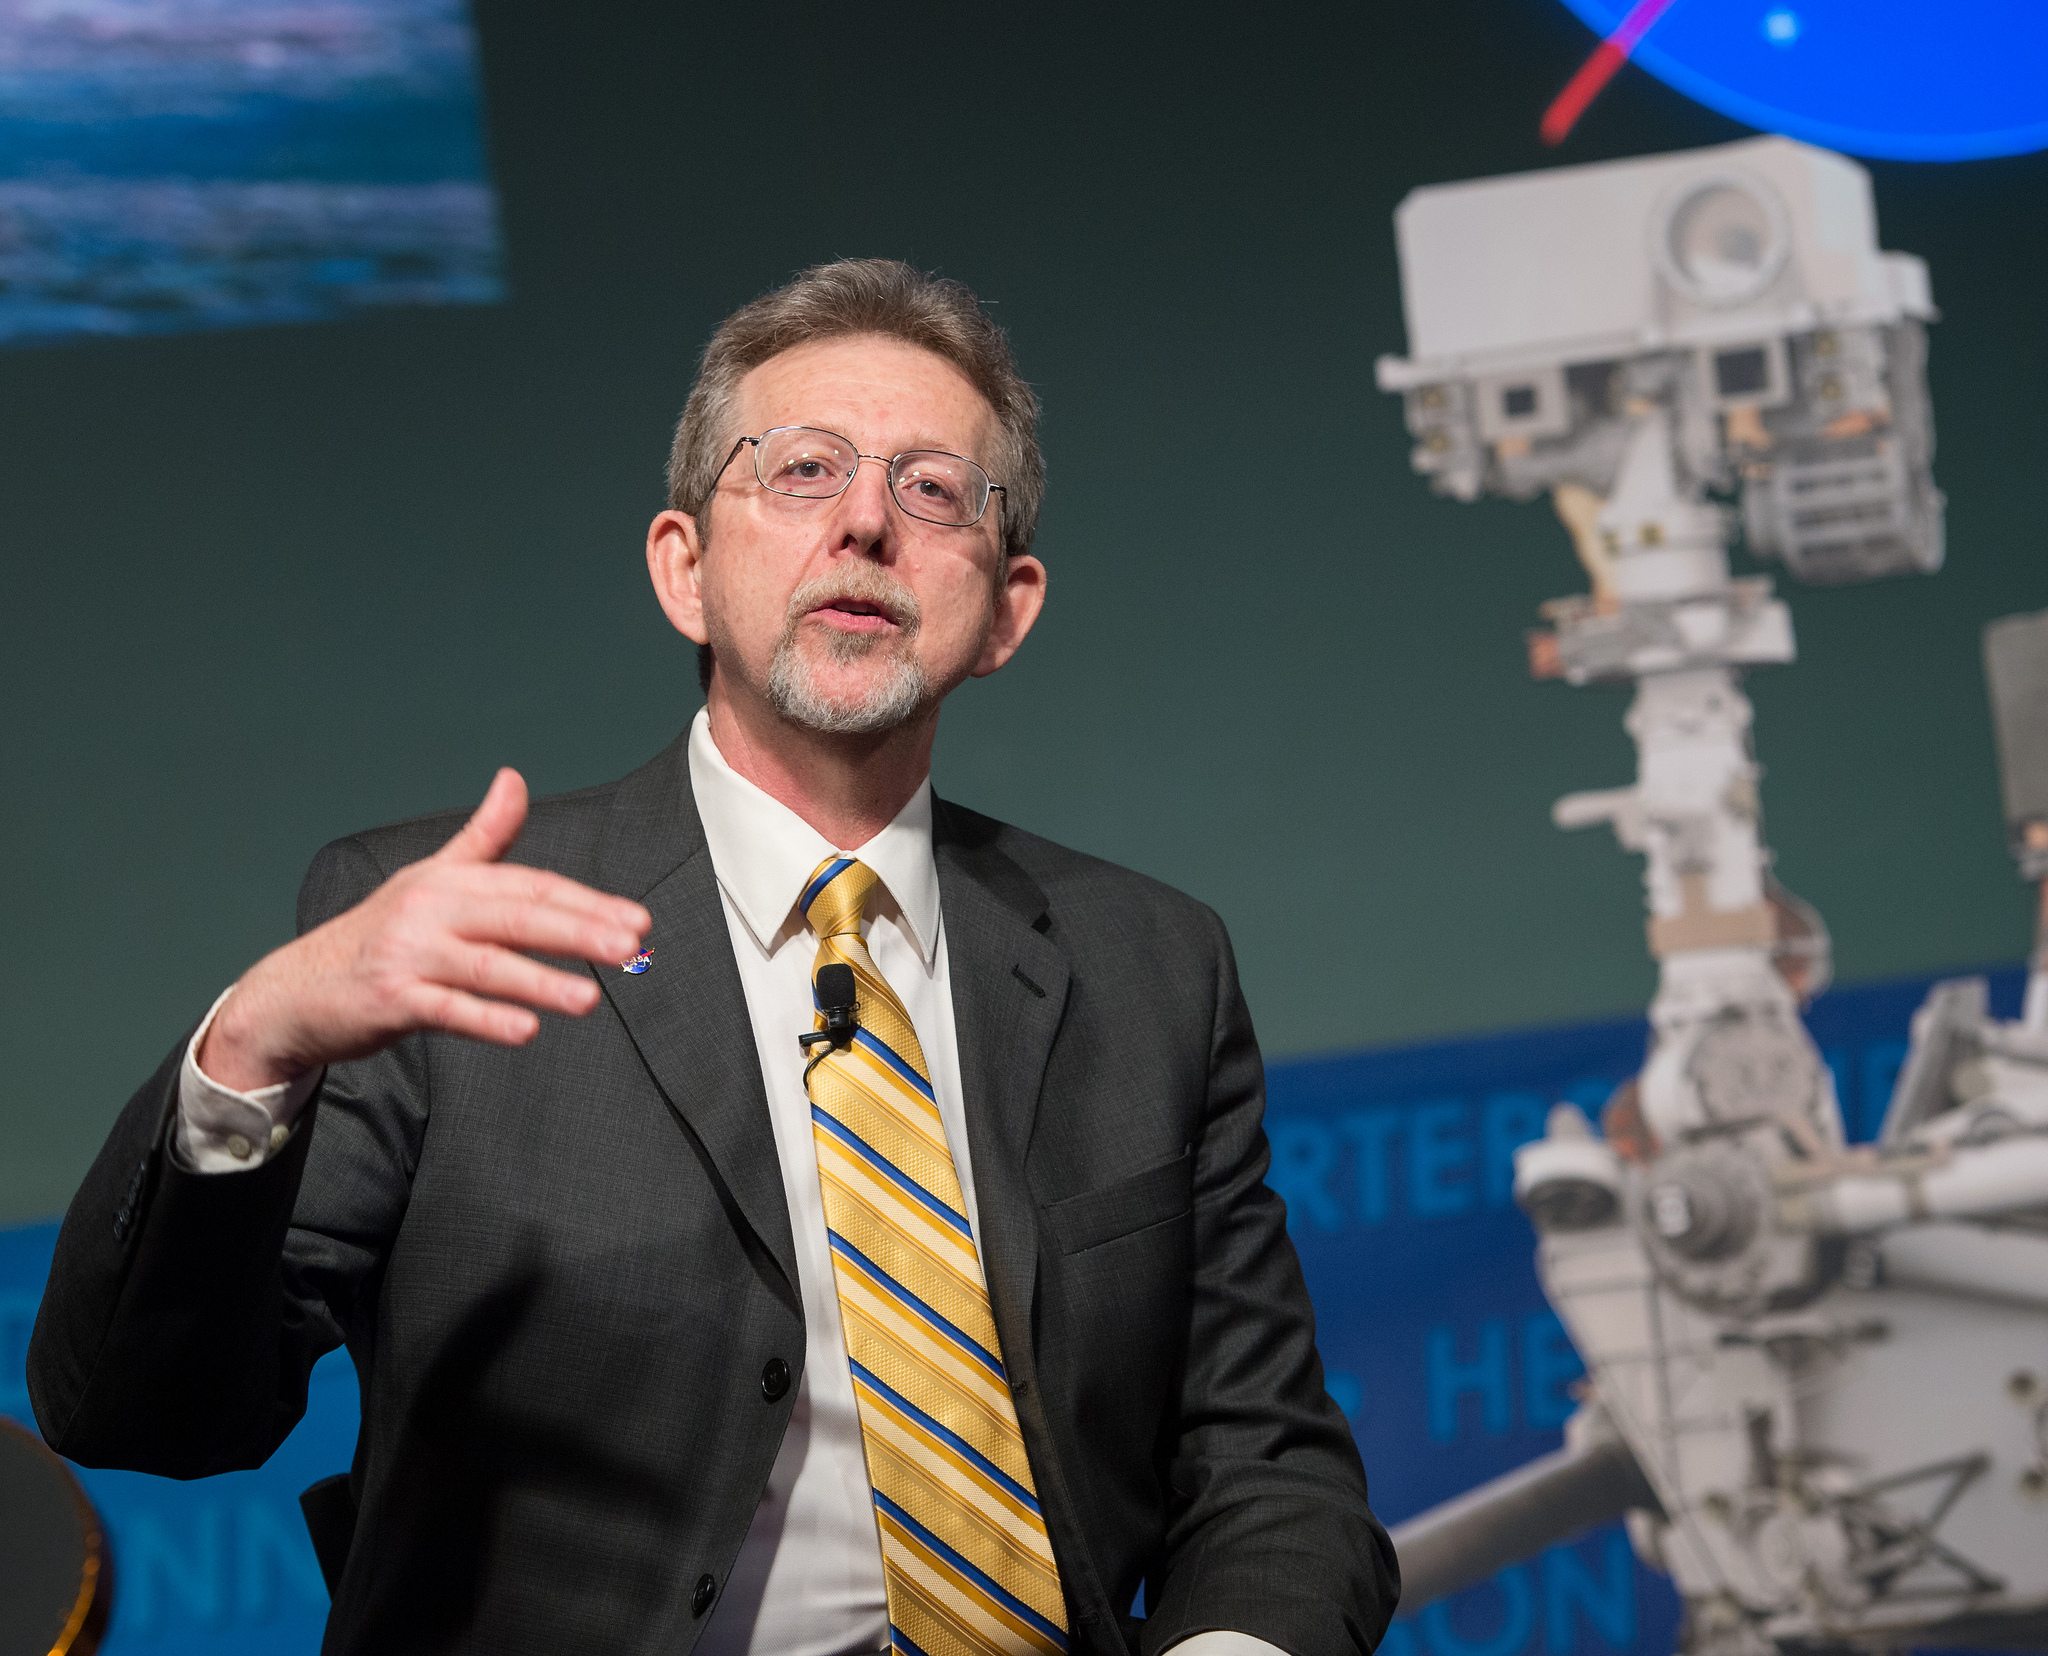 NASA Planetary Division Director Speaks at Curiosity's First Anniversary Event